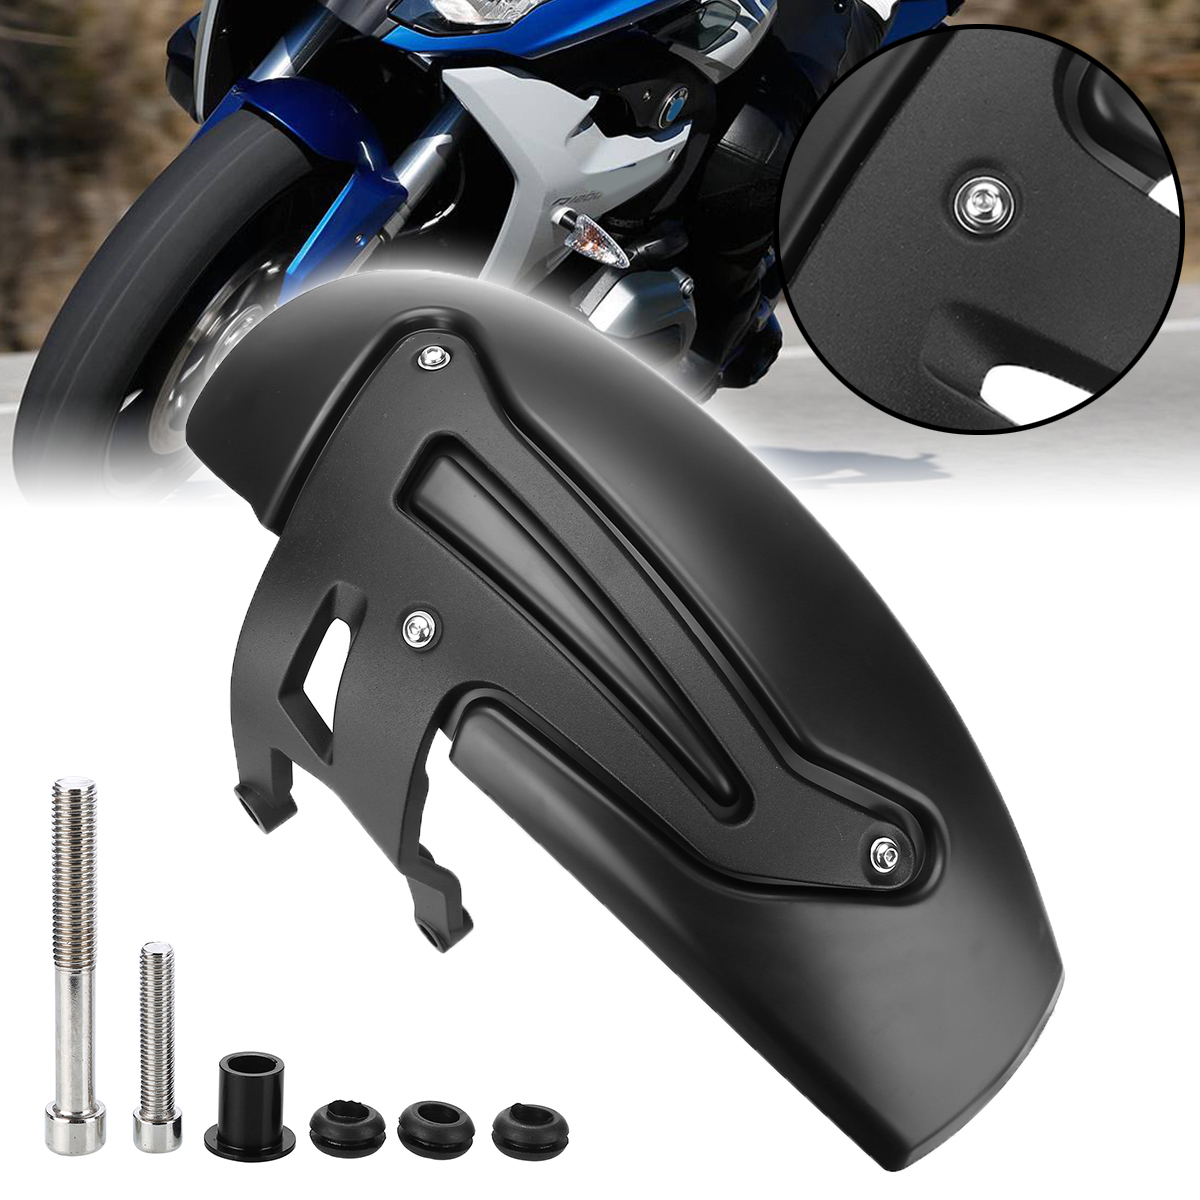 Motorcycle Rear Hugger Fender <font><b>Moto</b></font> Mudguard Accessories For <font><b>BMW</b></font> R1200GS <font><b>LC</b></font> 2013 - 2017 2018 R <font><b>1200</b></font> <font><b>GS</b></font> <font><b>LC</b></font> Adventure 2014-2018 image